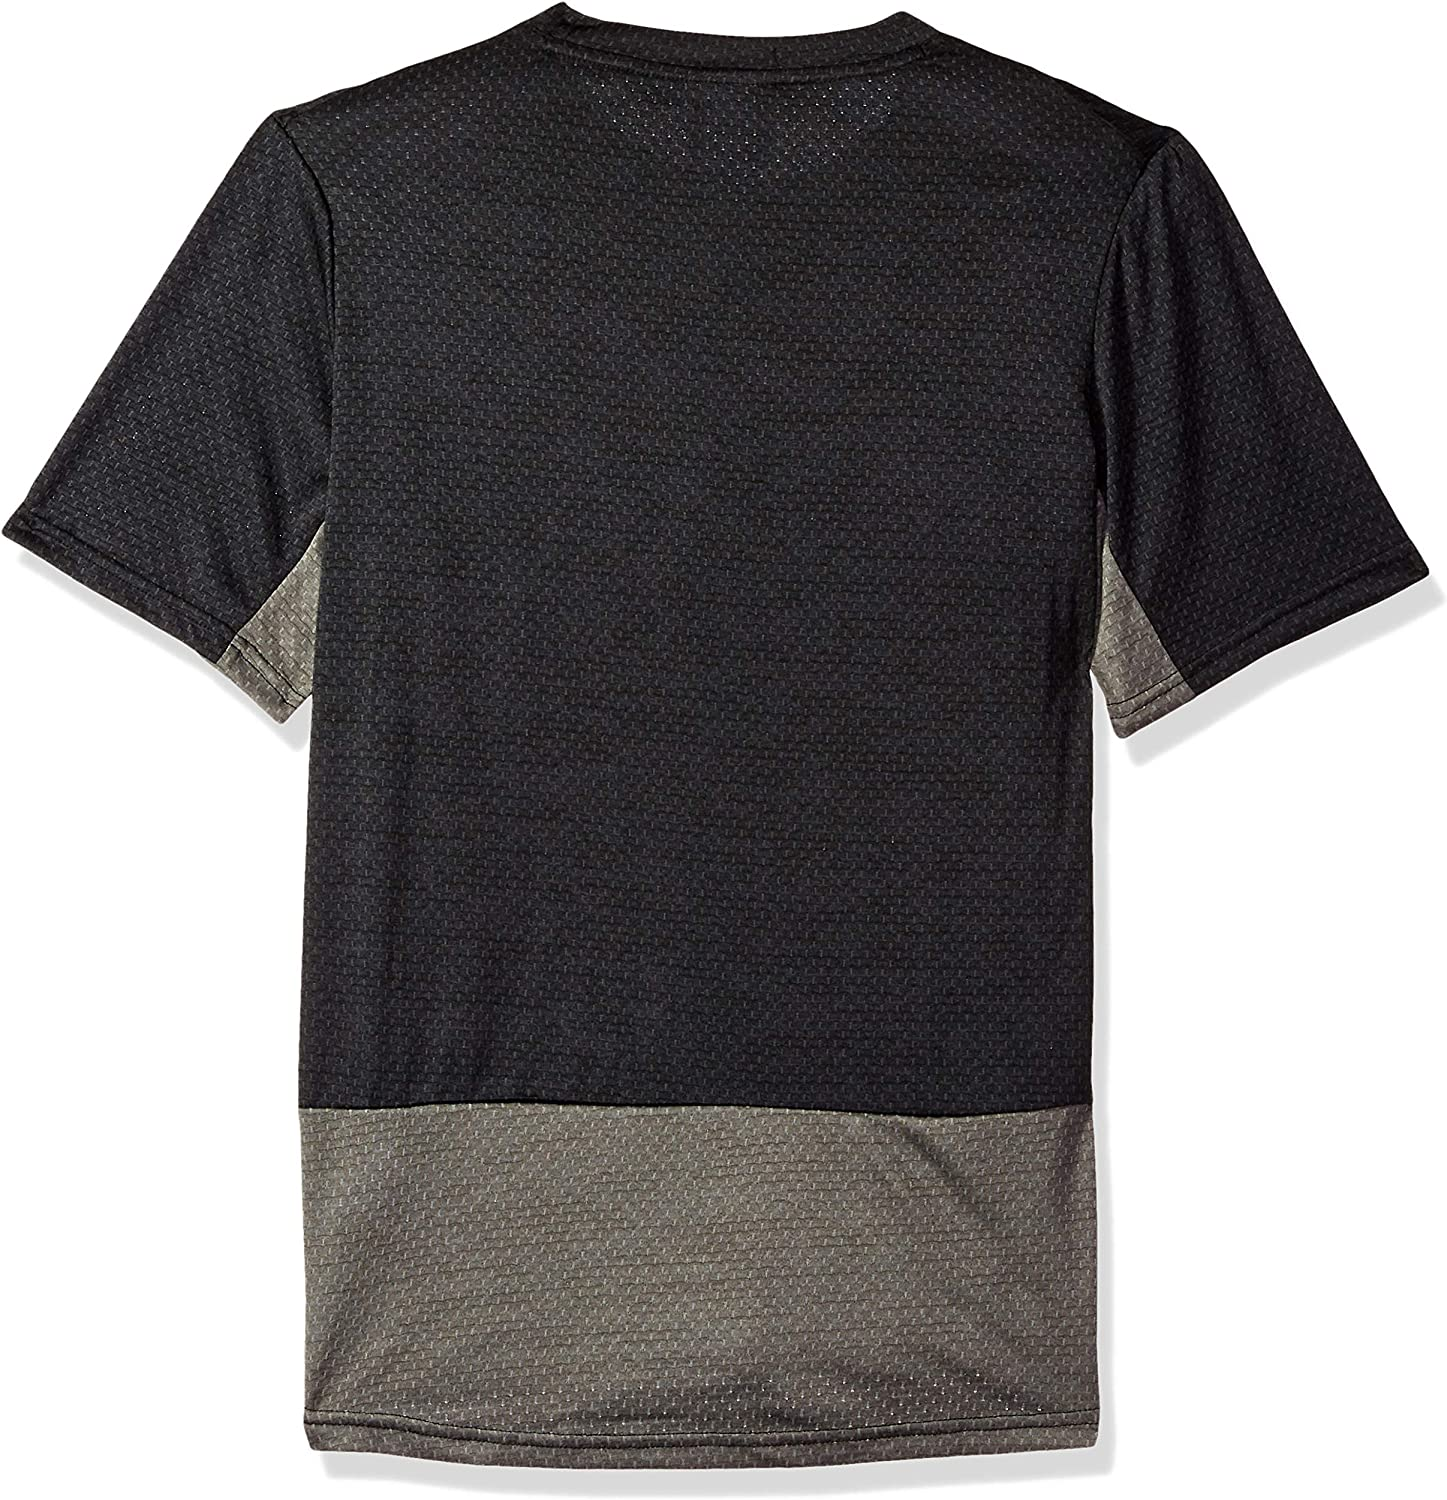 NBA by Outerstuff NBA Youth Boys Covert Short Sleeve Performance Tee